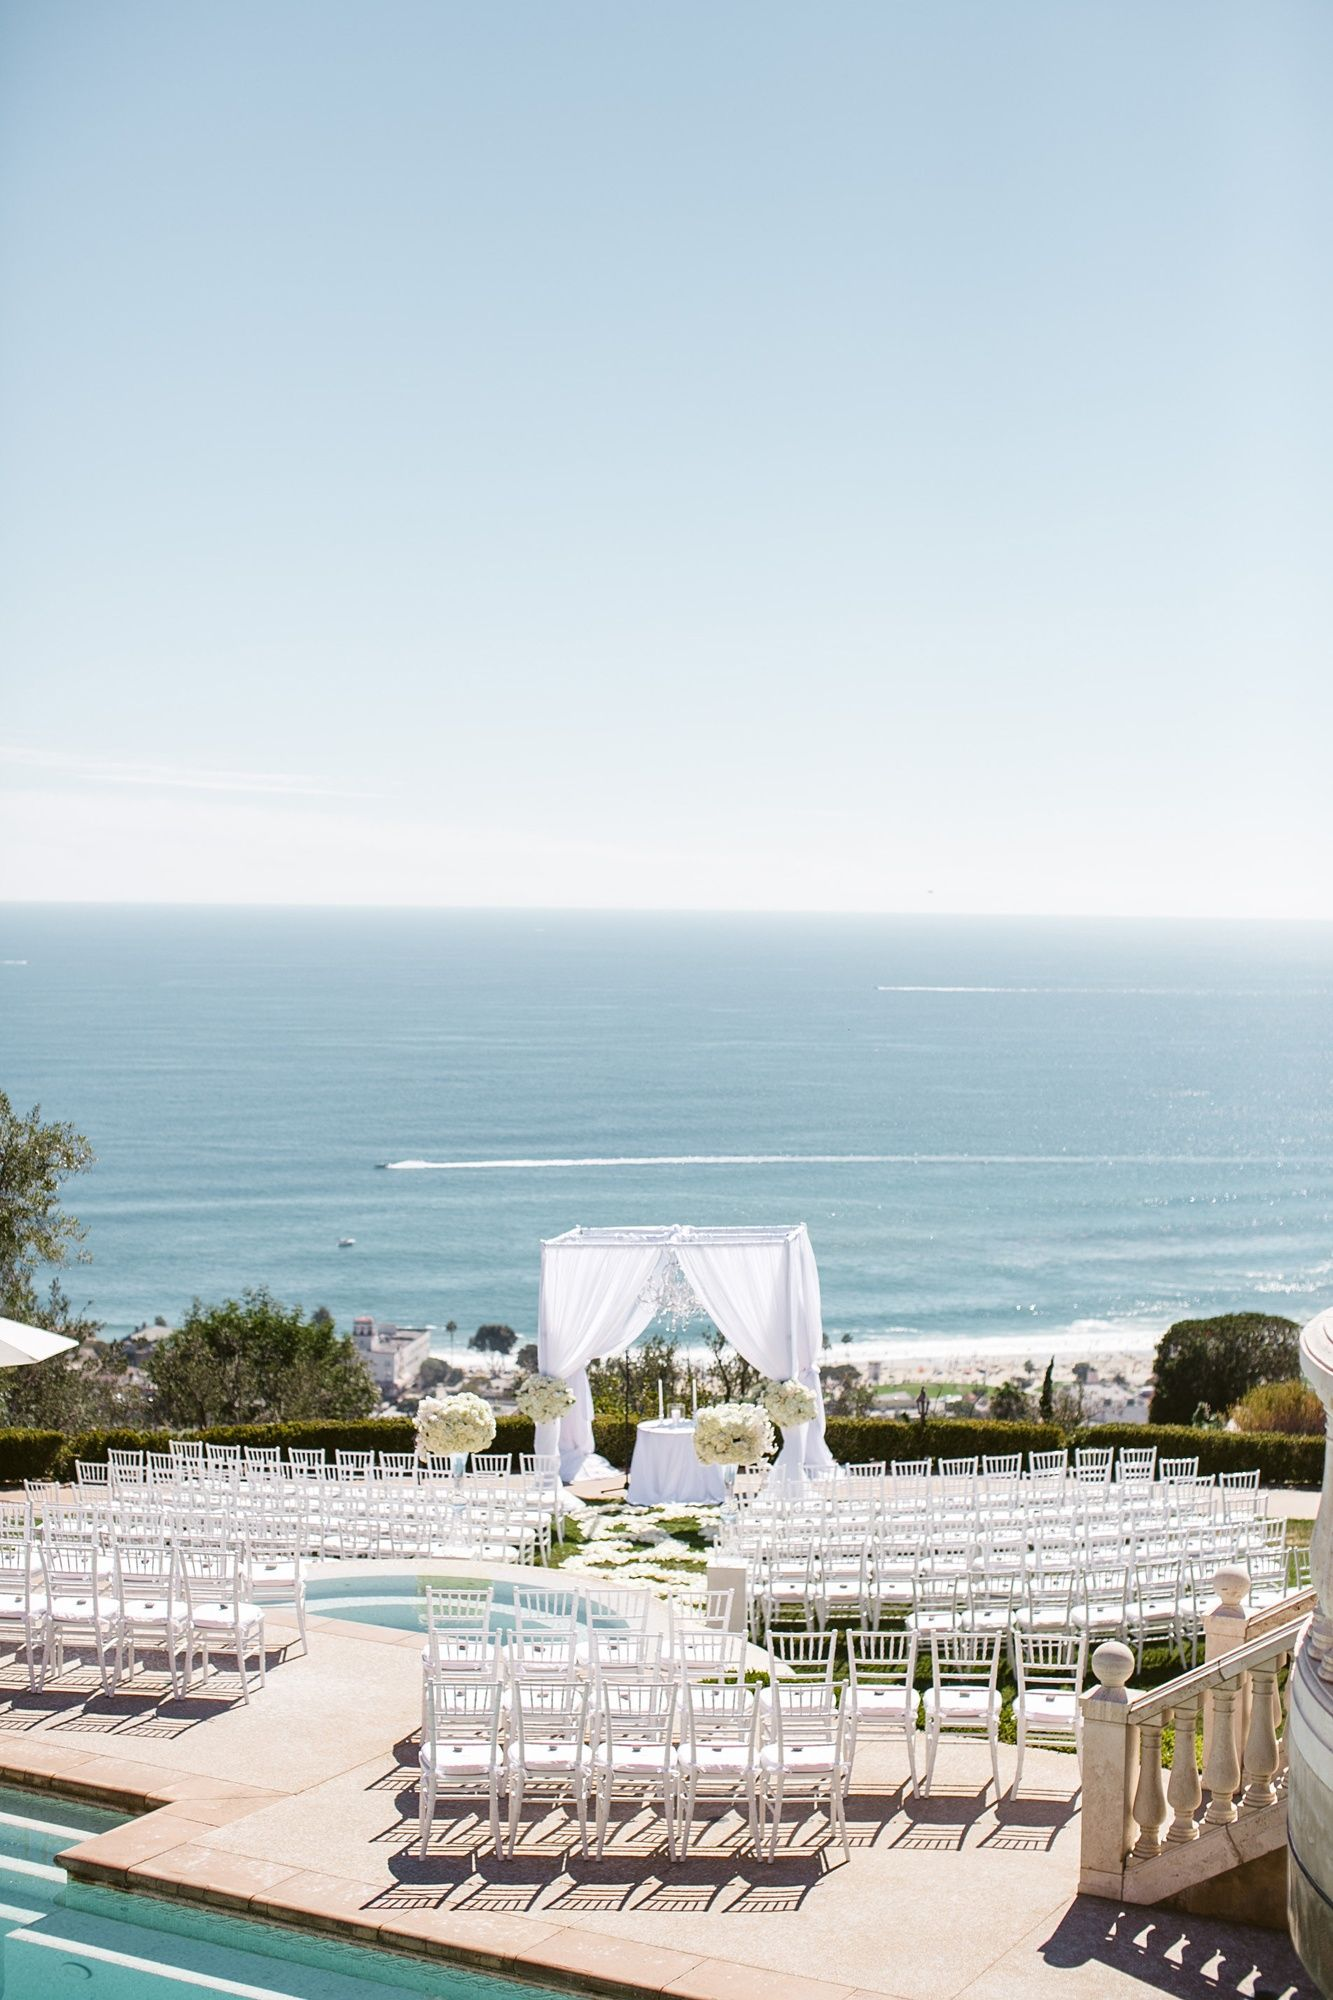 An Elegant Seaside Wedding At Oceana Estate In Laguna Beach California Luxury Weddings Events Theknot